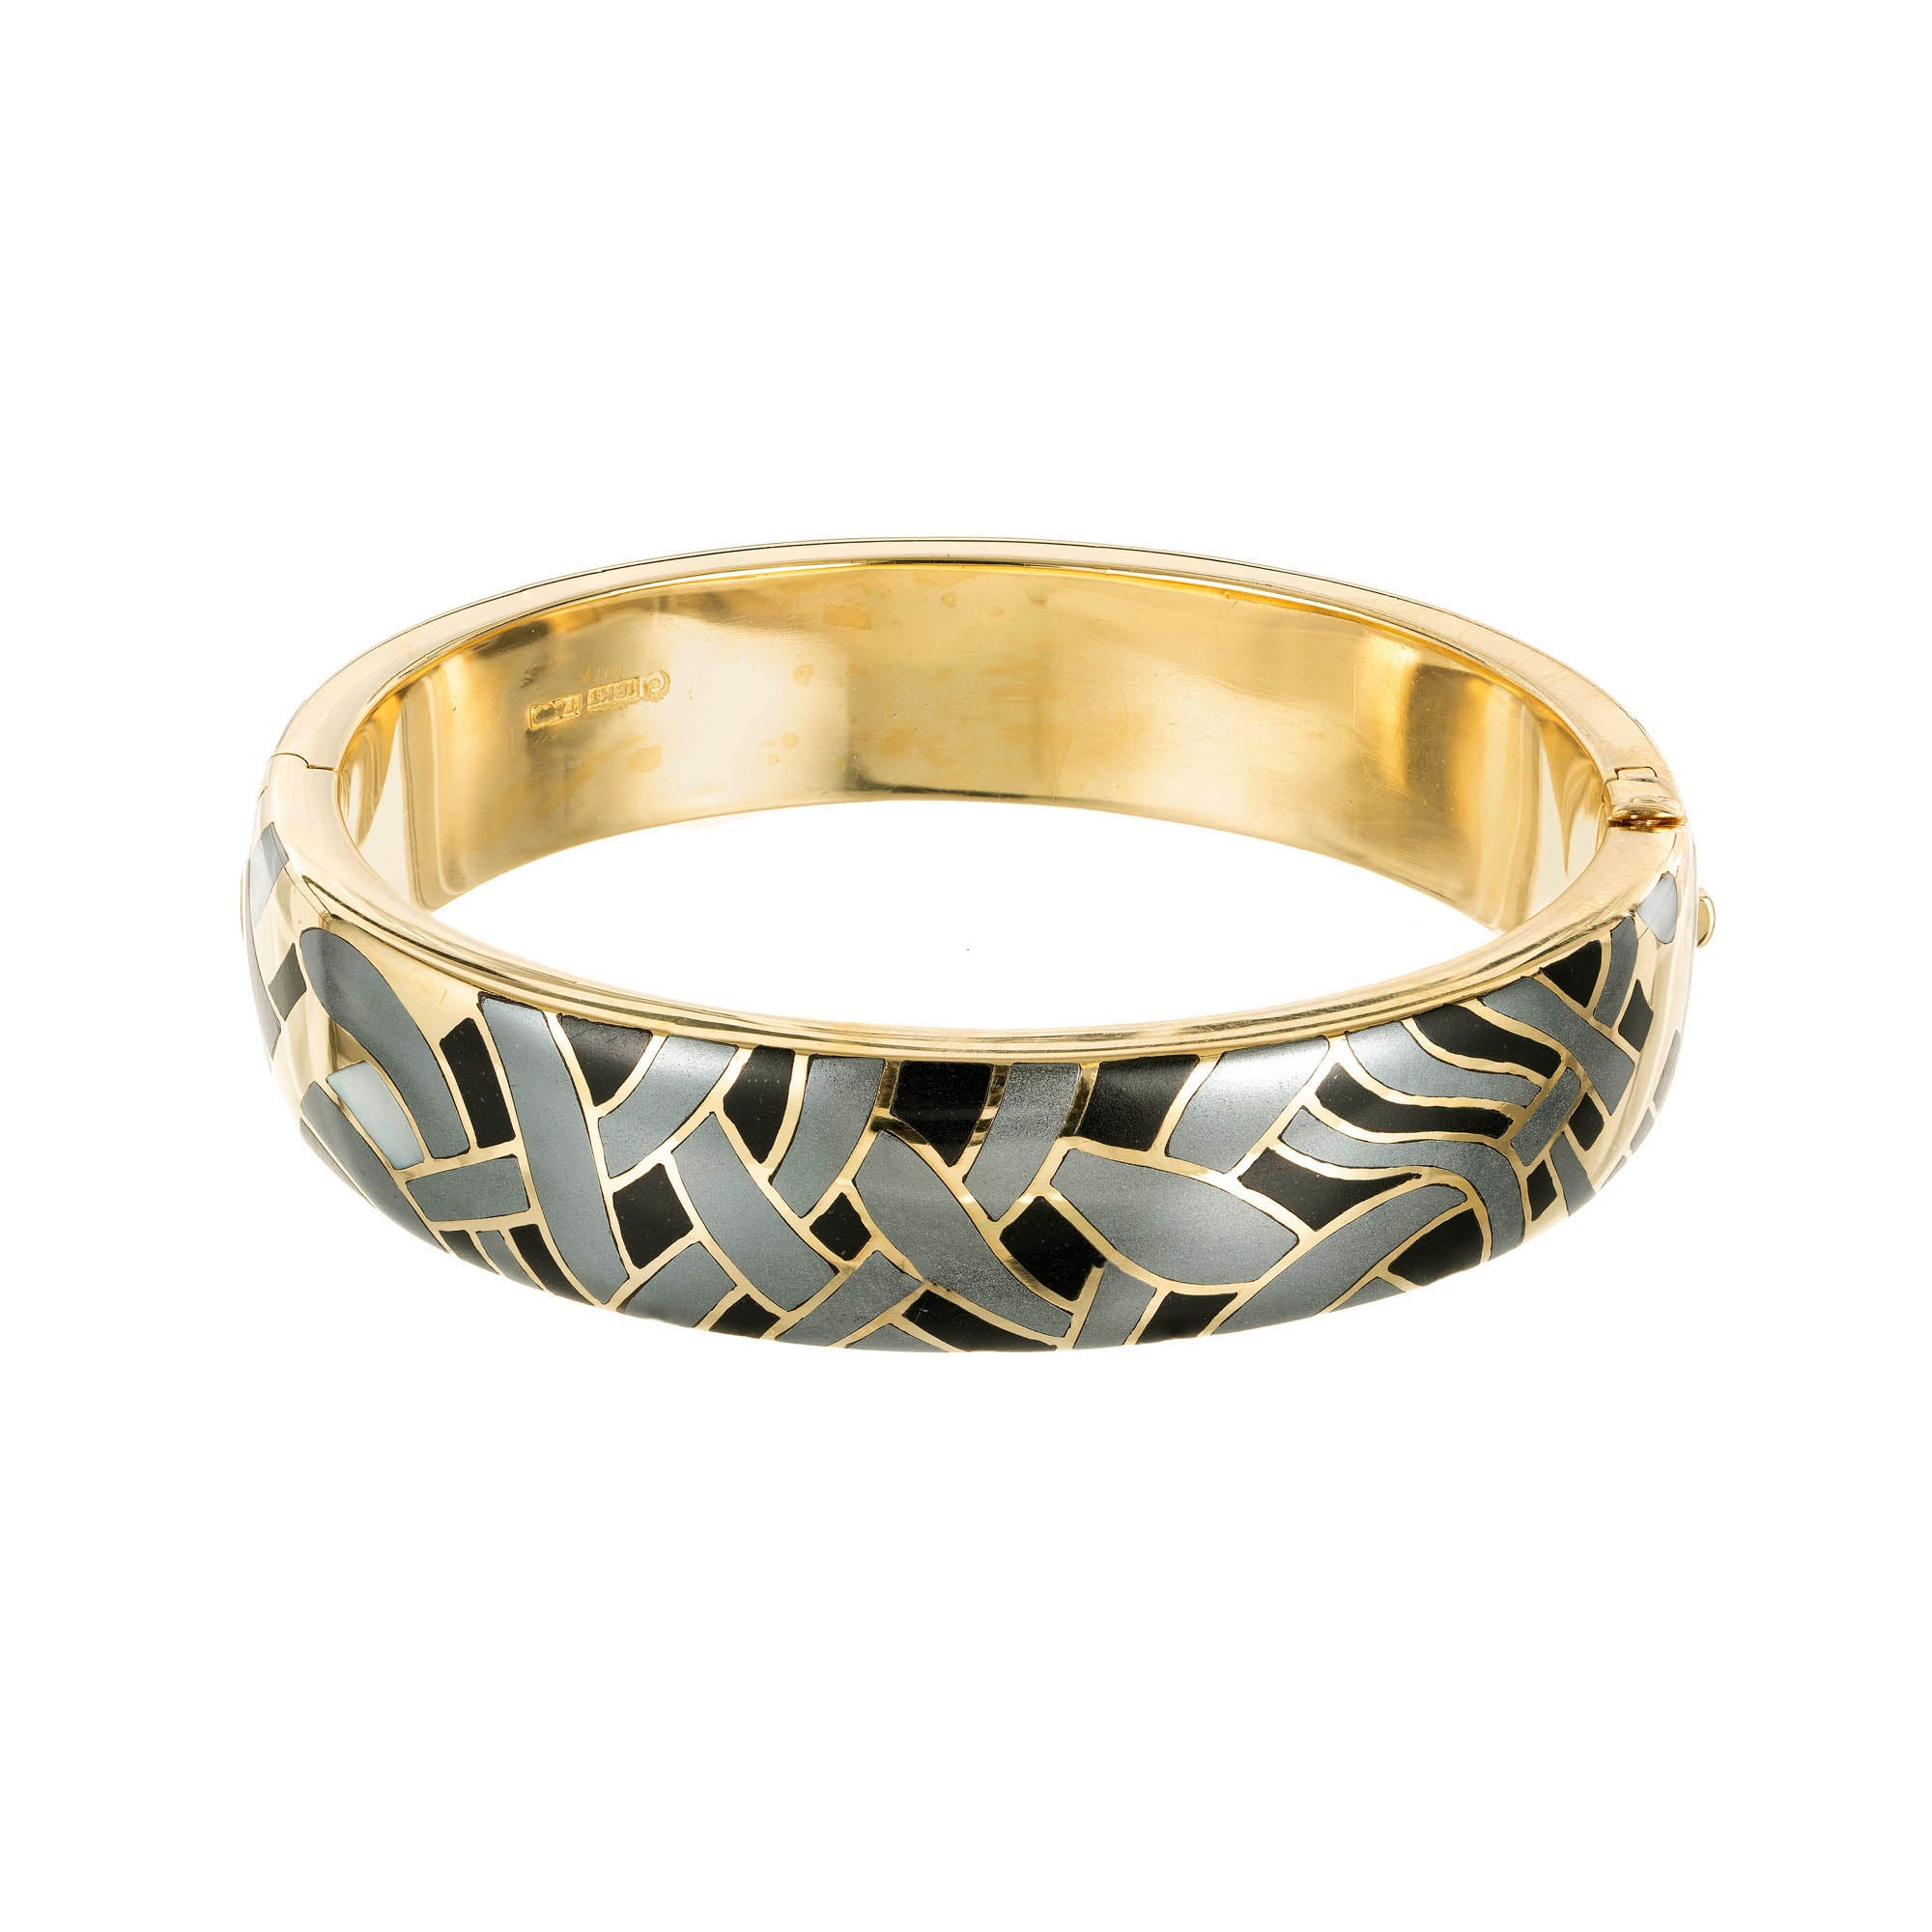 702ca10bd Tiffany and Co. Mother of Pearl Hematite Black Jade Yellow Gold Bangle  Bracelet at 1stdibs